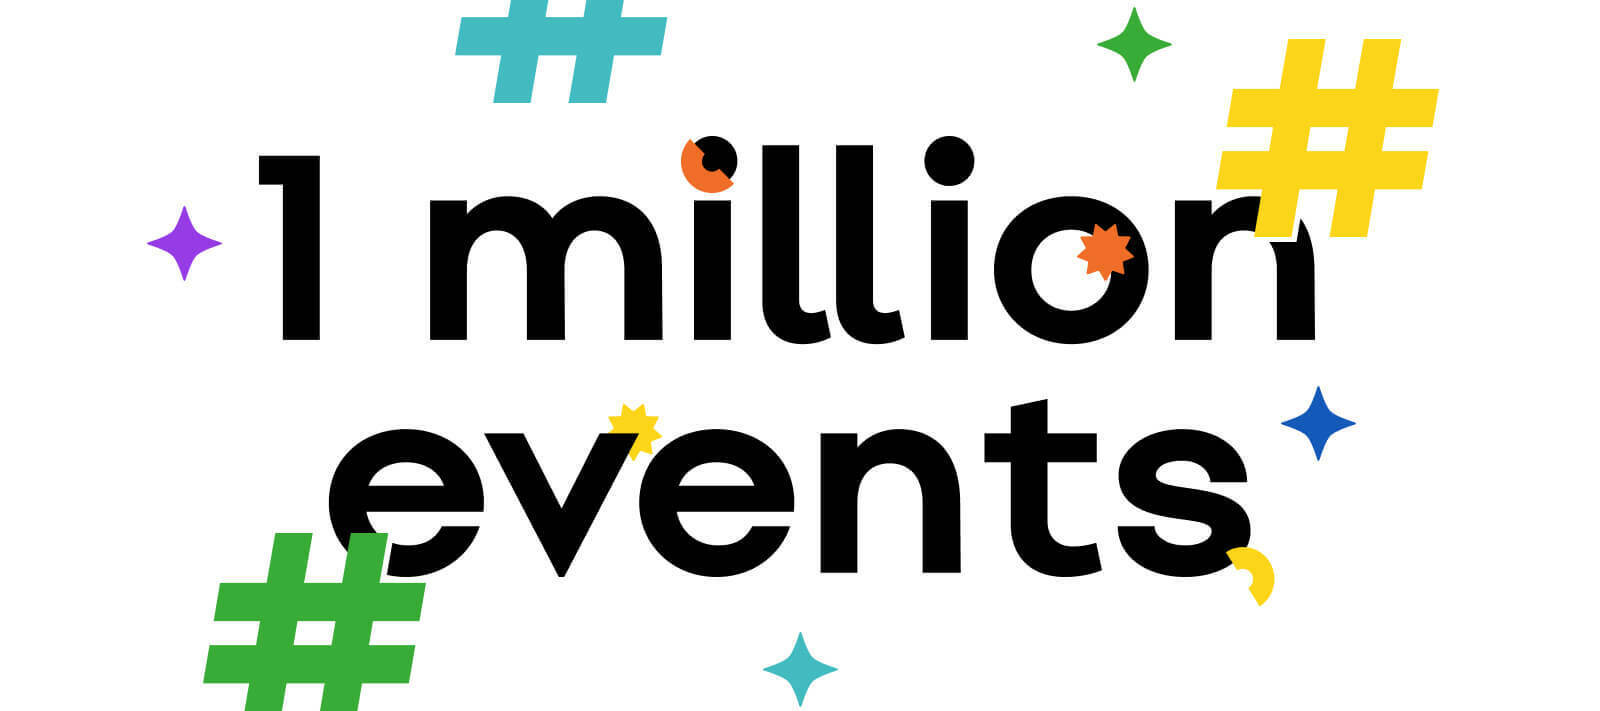 1 Million Events 🎉